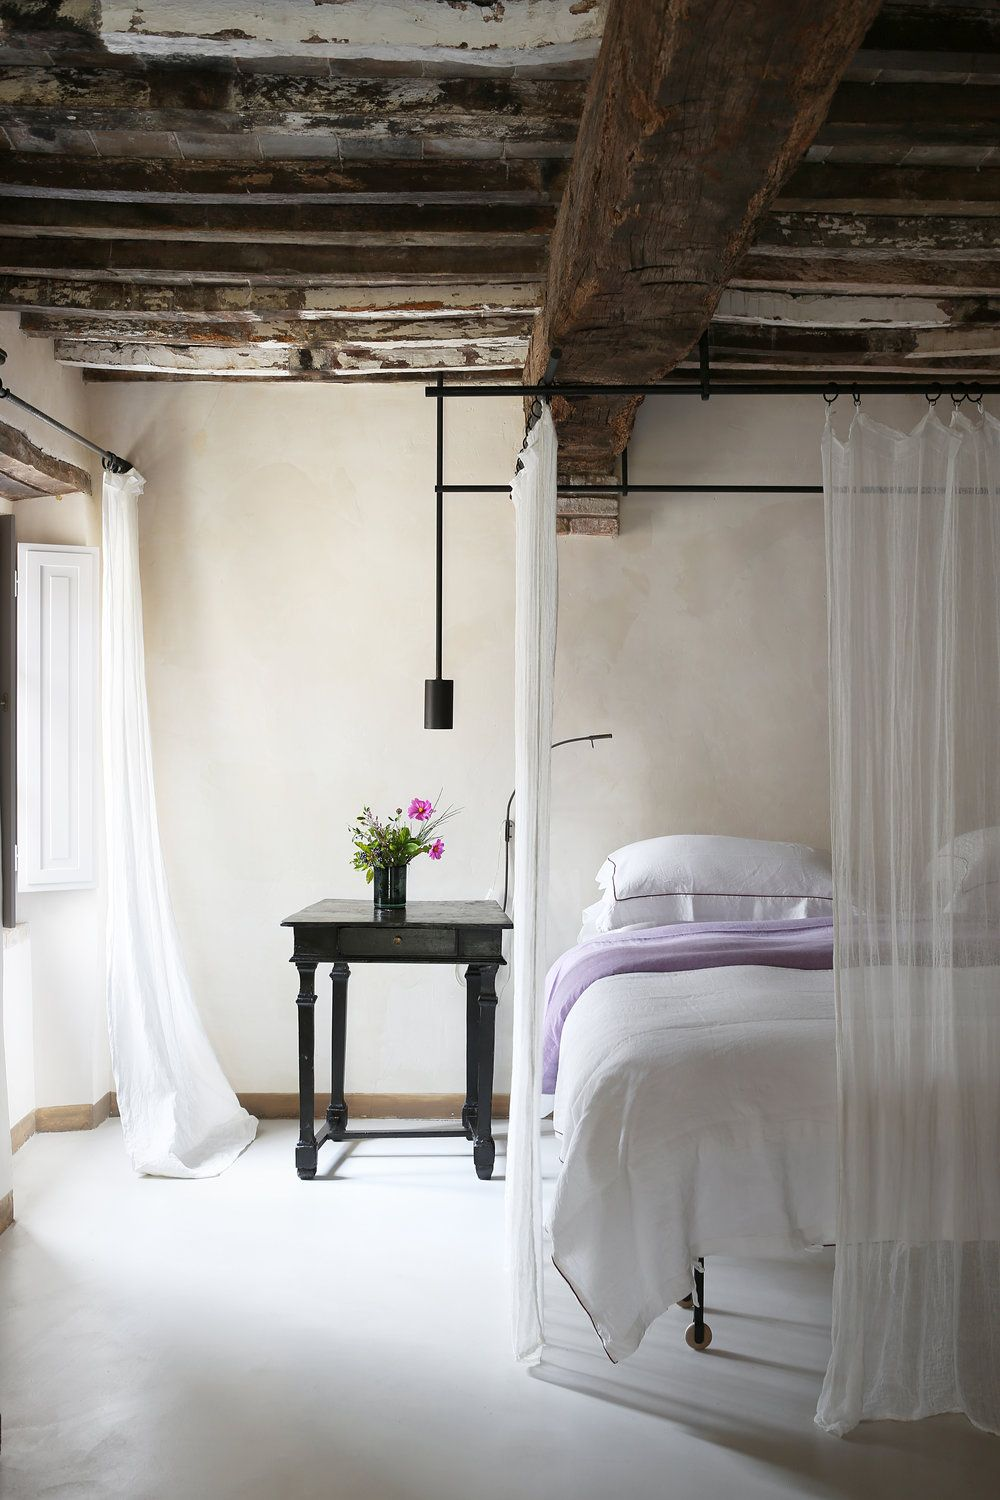 Cute loft bed ideas  This Successful Travel Blogger Proves Thereus More to it Than Pretty